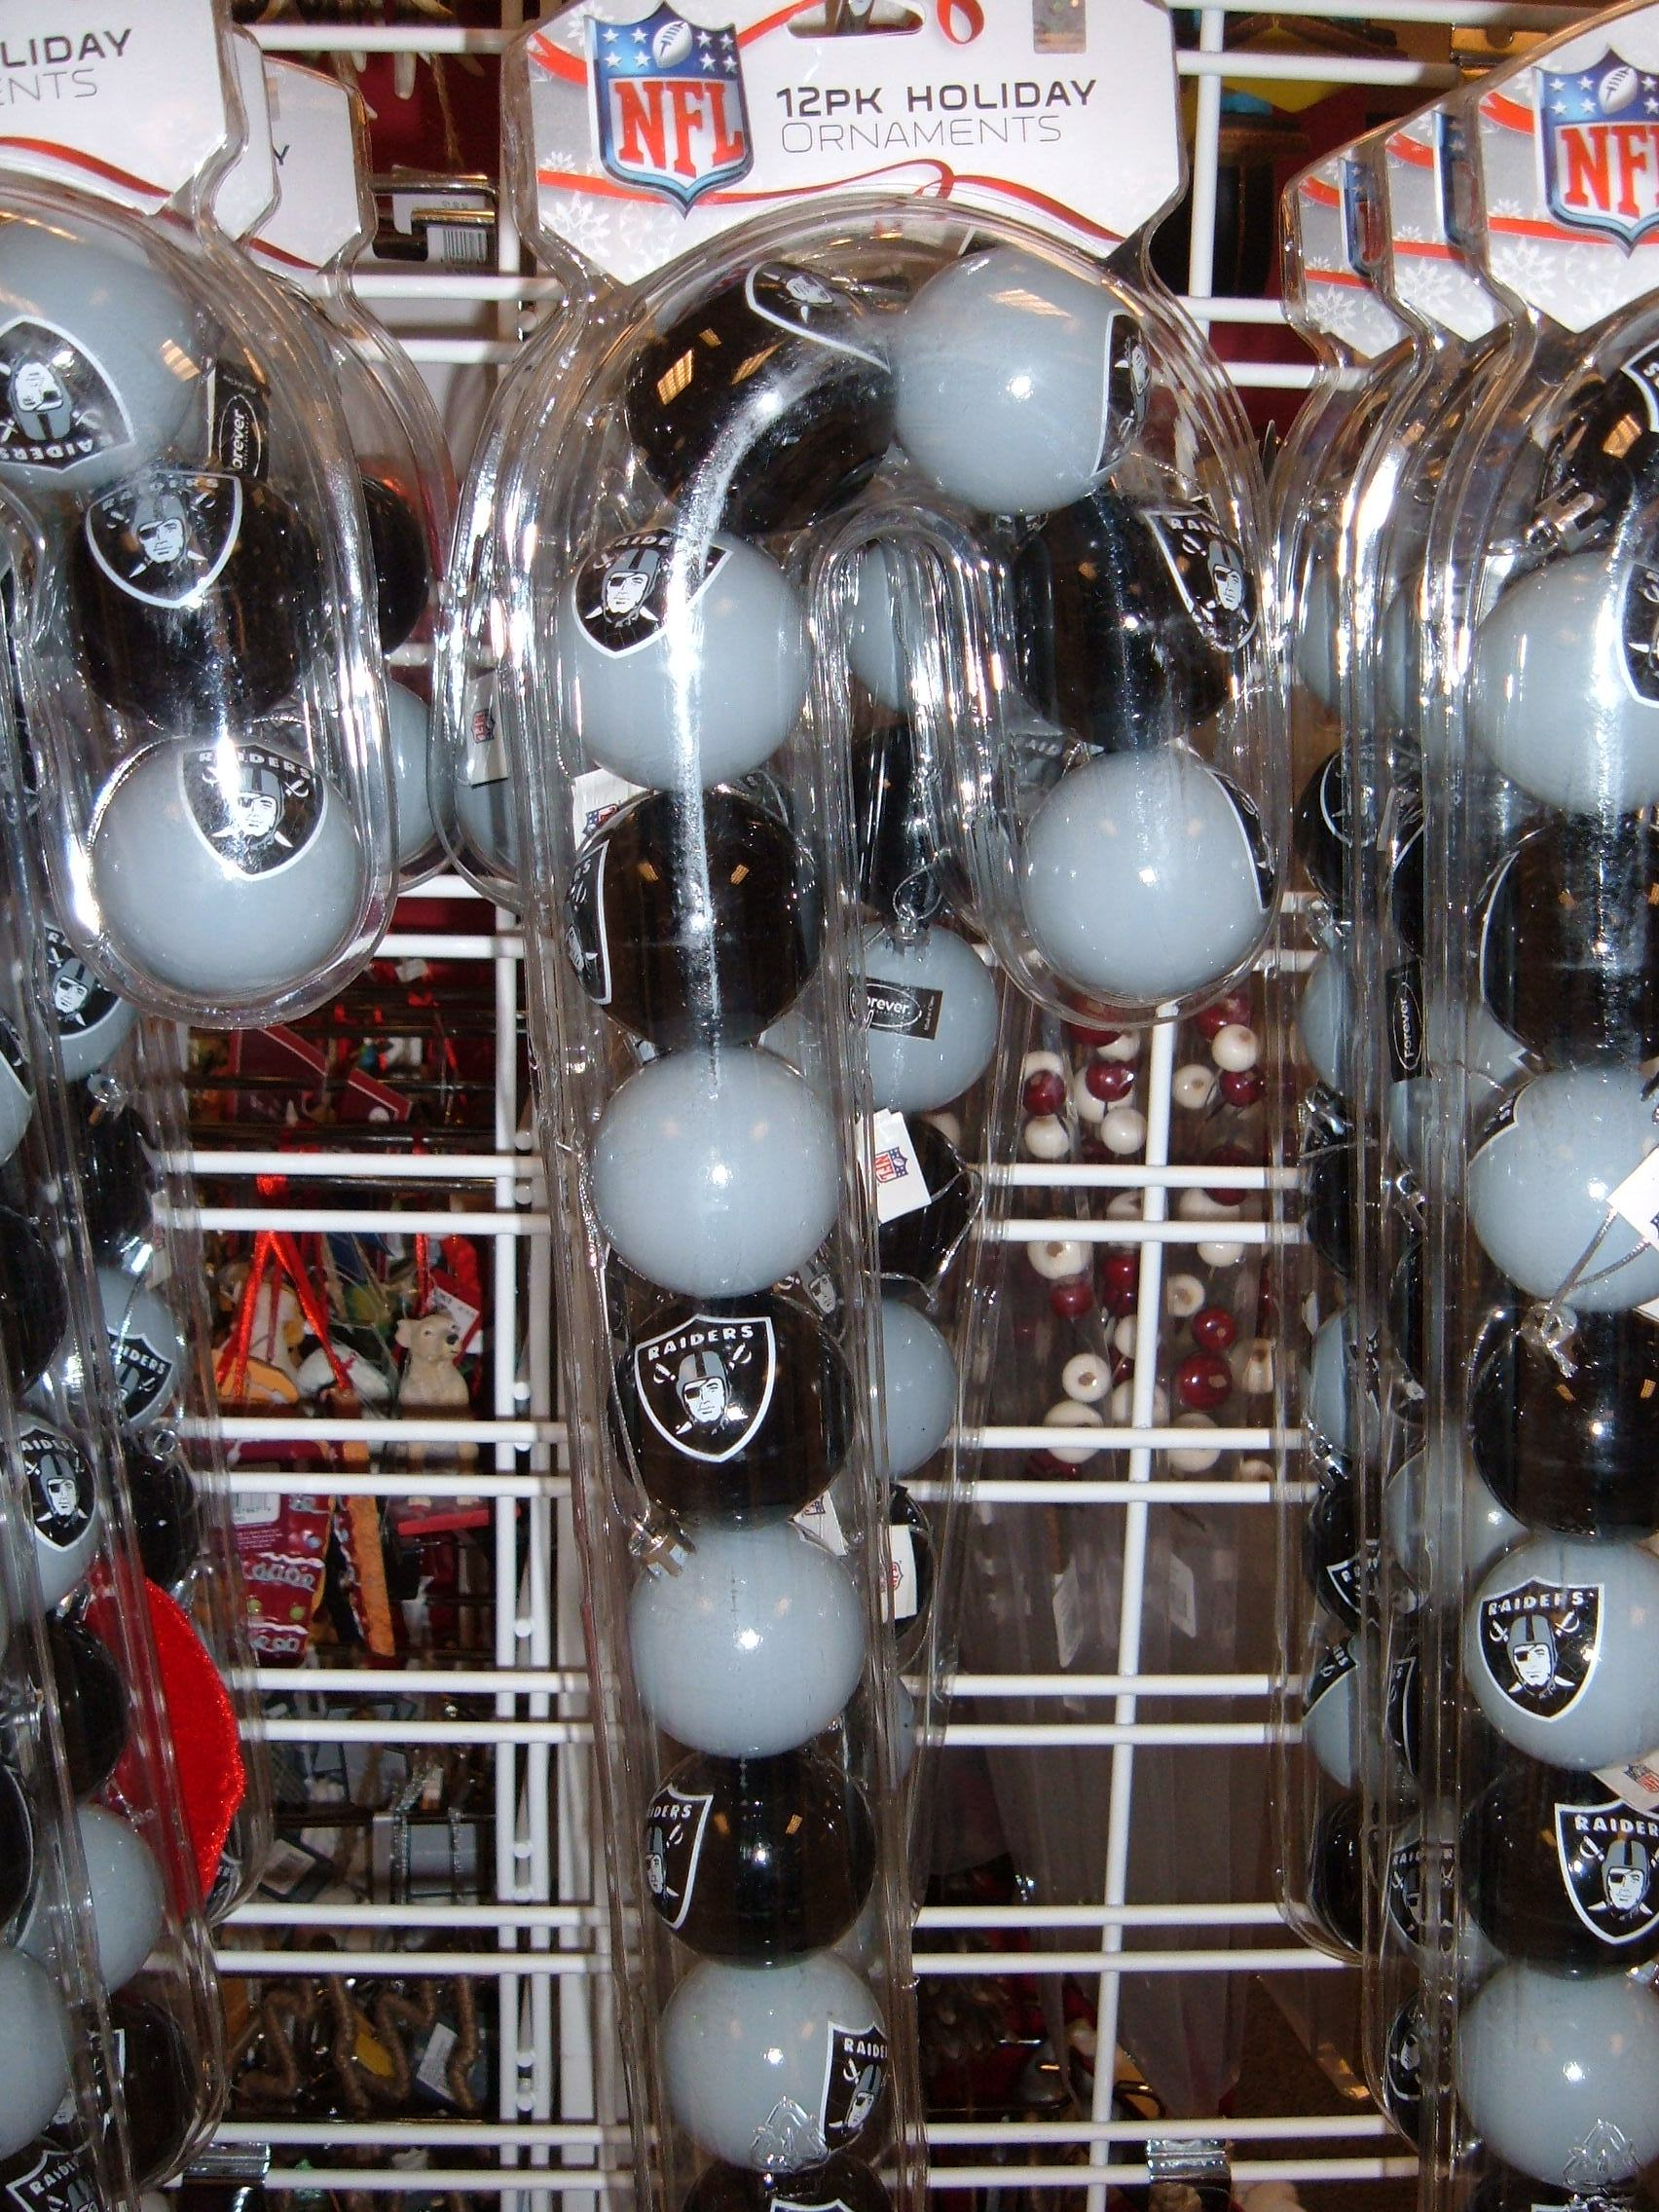 File:Oakland Raiders Christmas tree ornaments.JPG - Wikimedia Commons